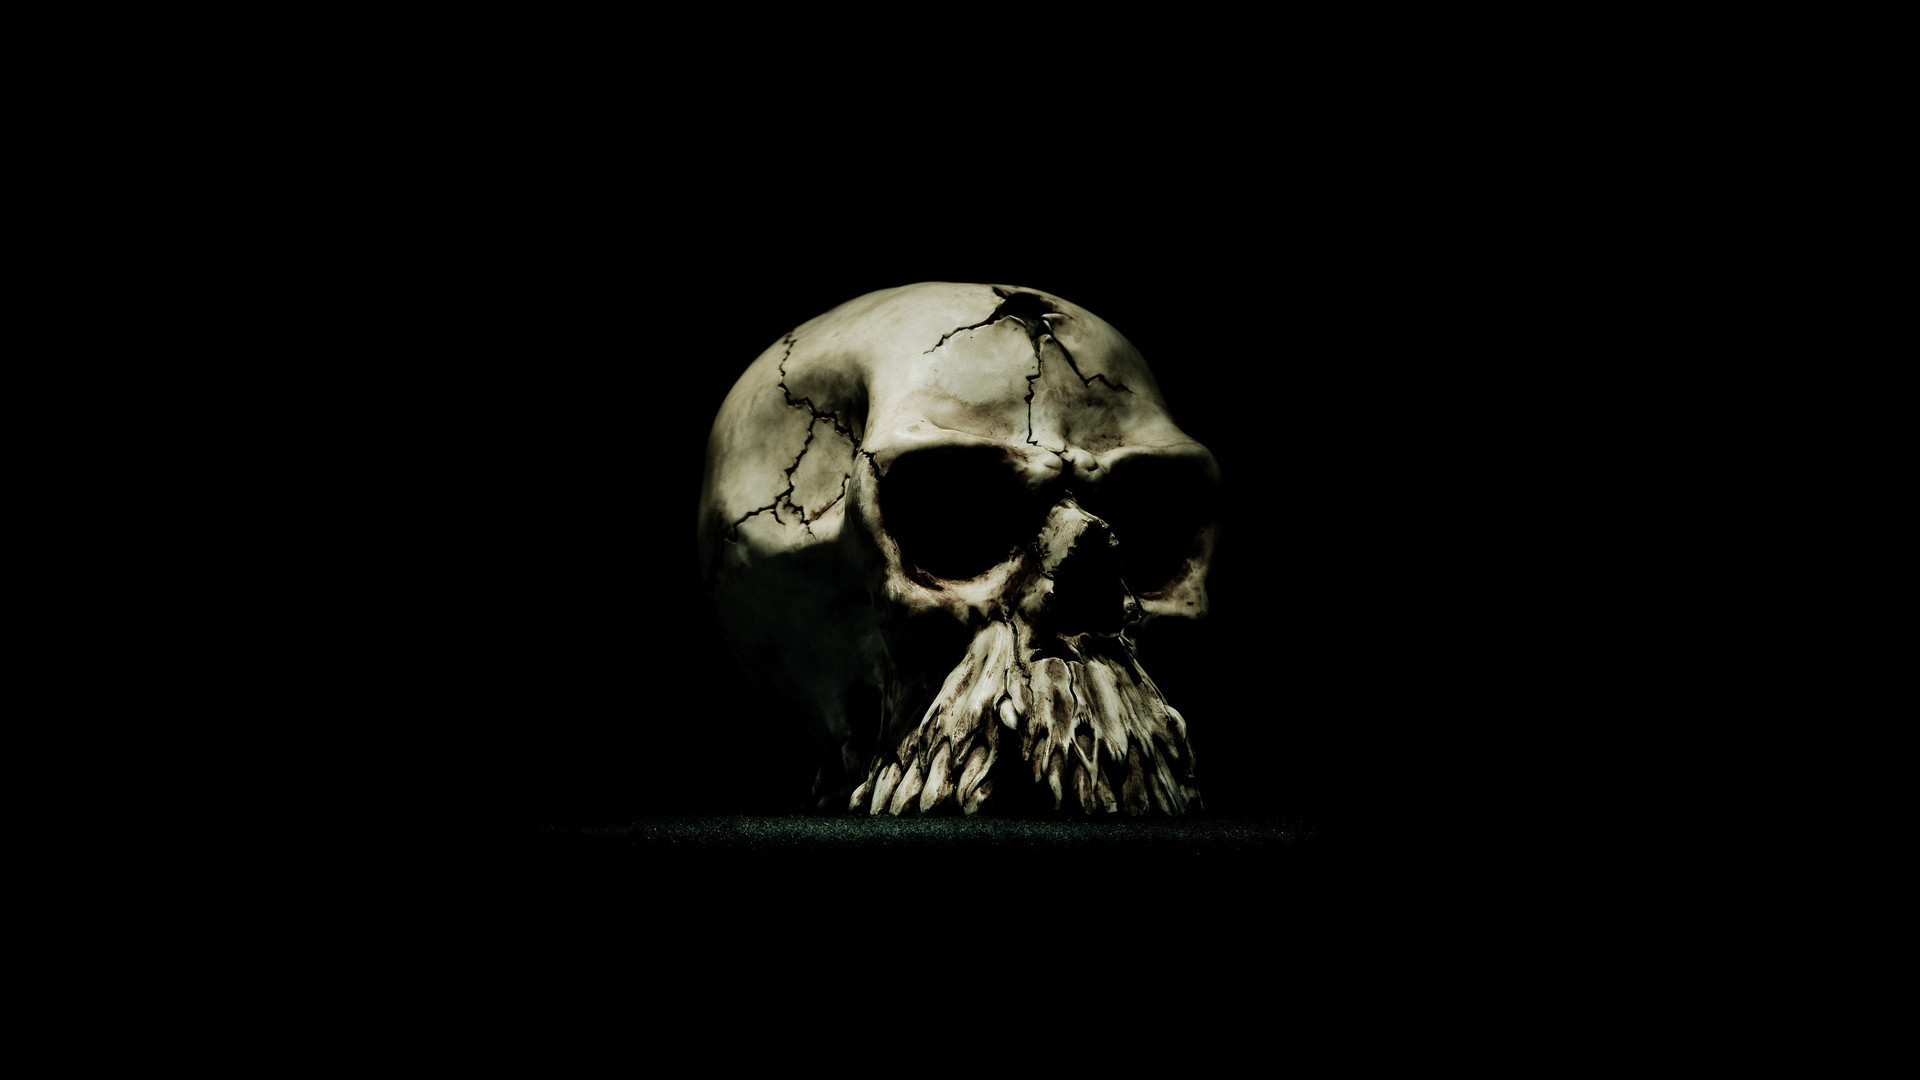 Scary skull wallpaper 48 images - Scary skull backgrounds ...